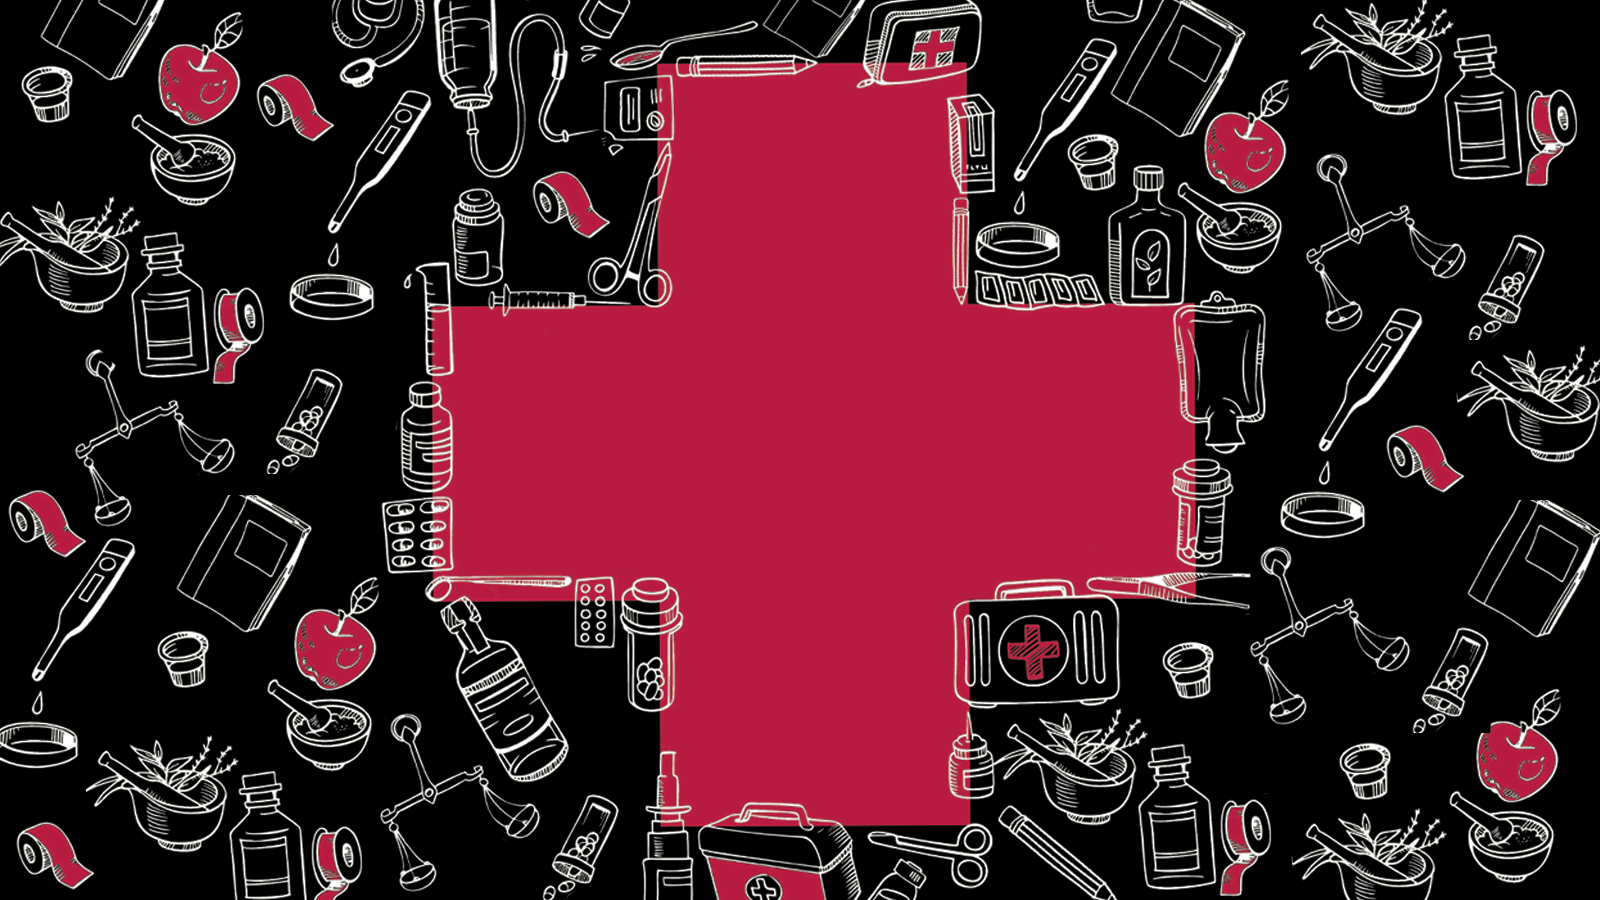 Red Cross with medical and humanities symbols